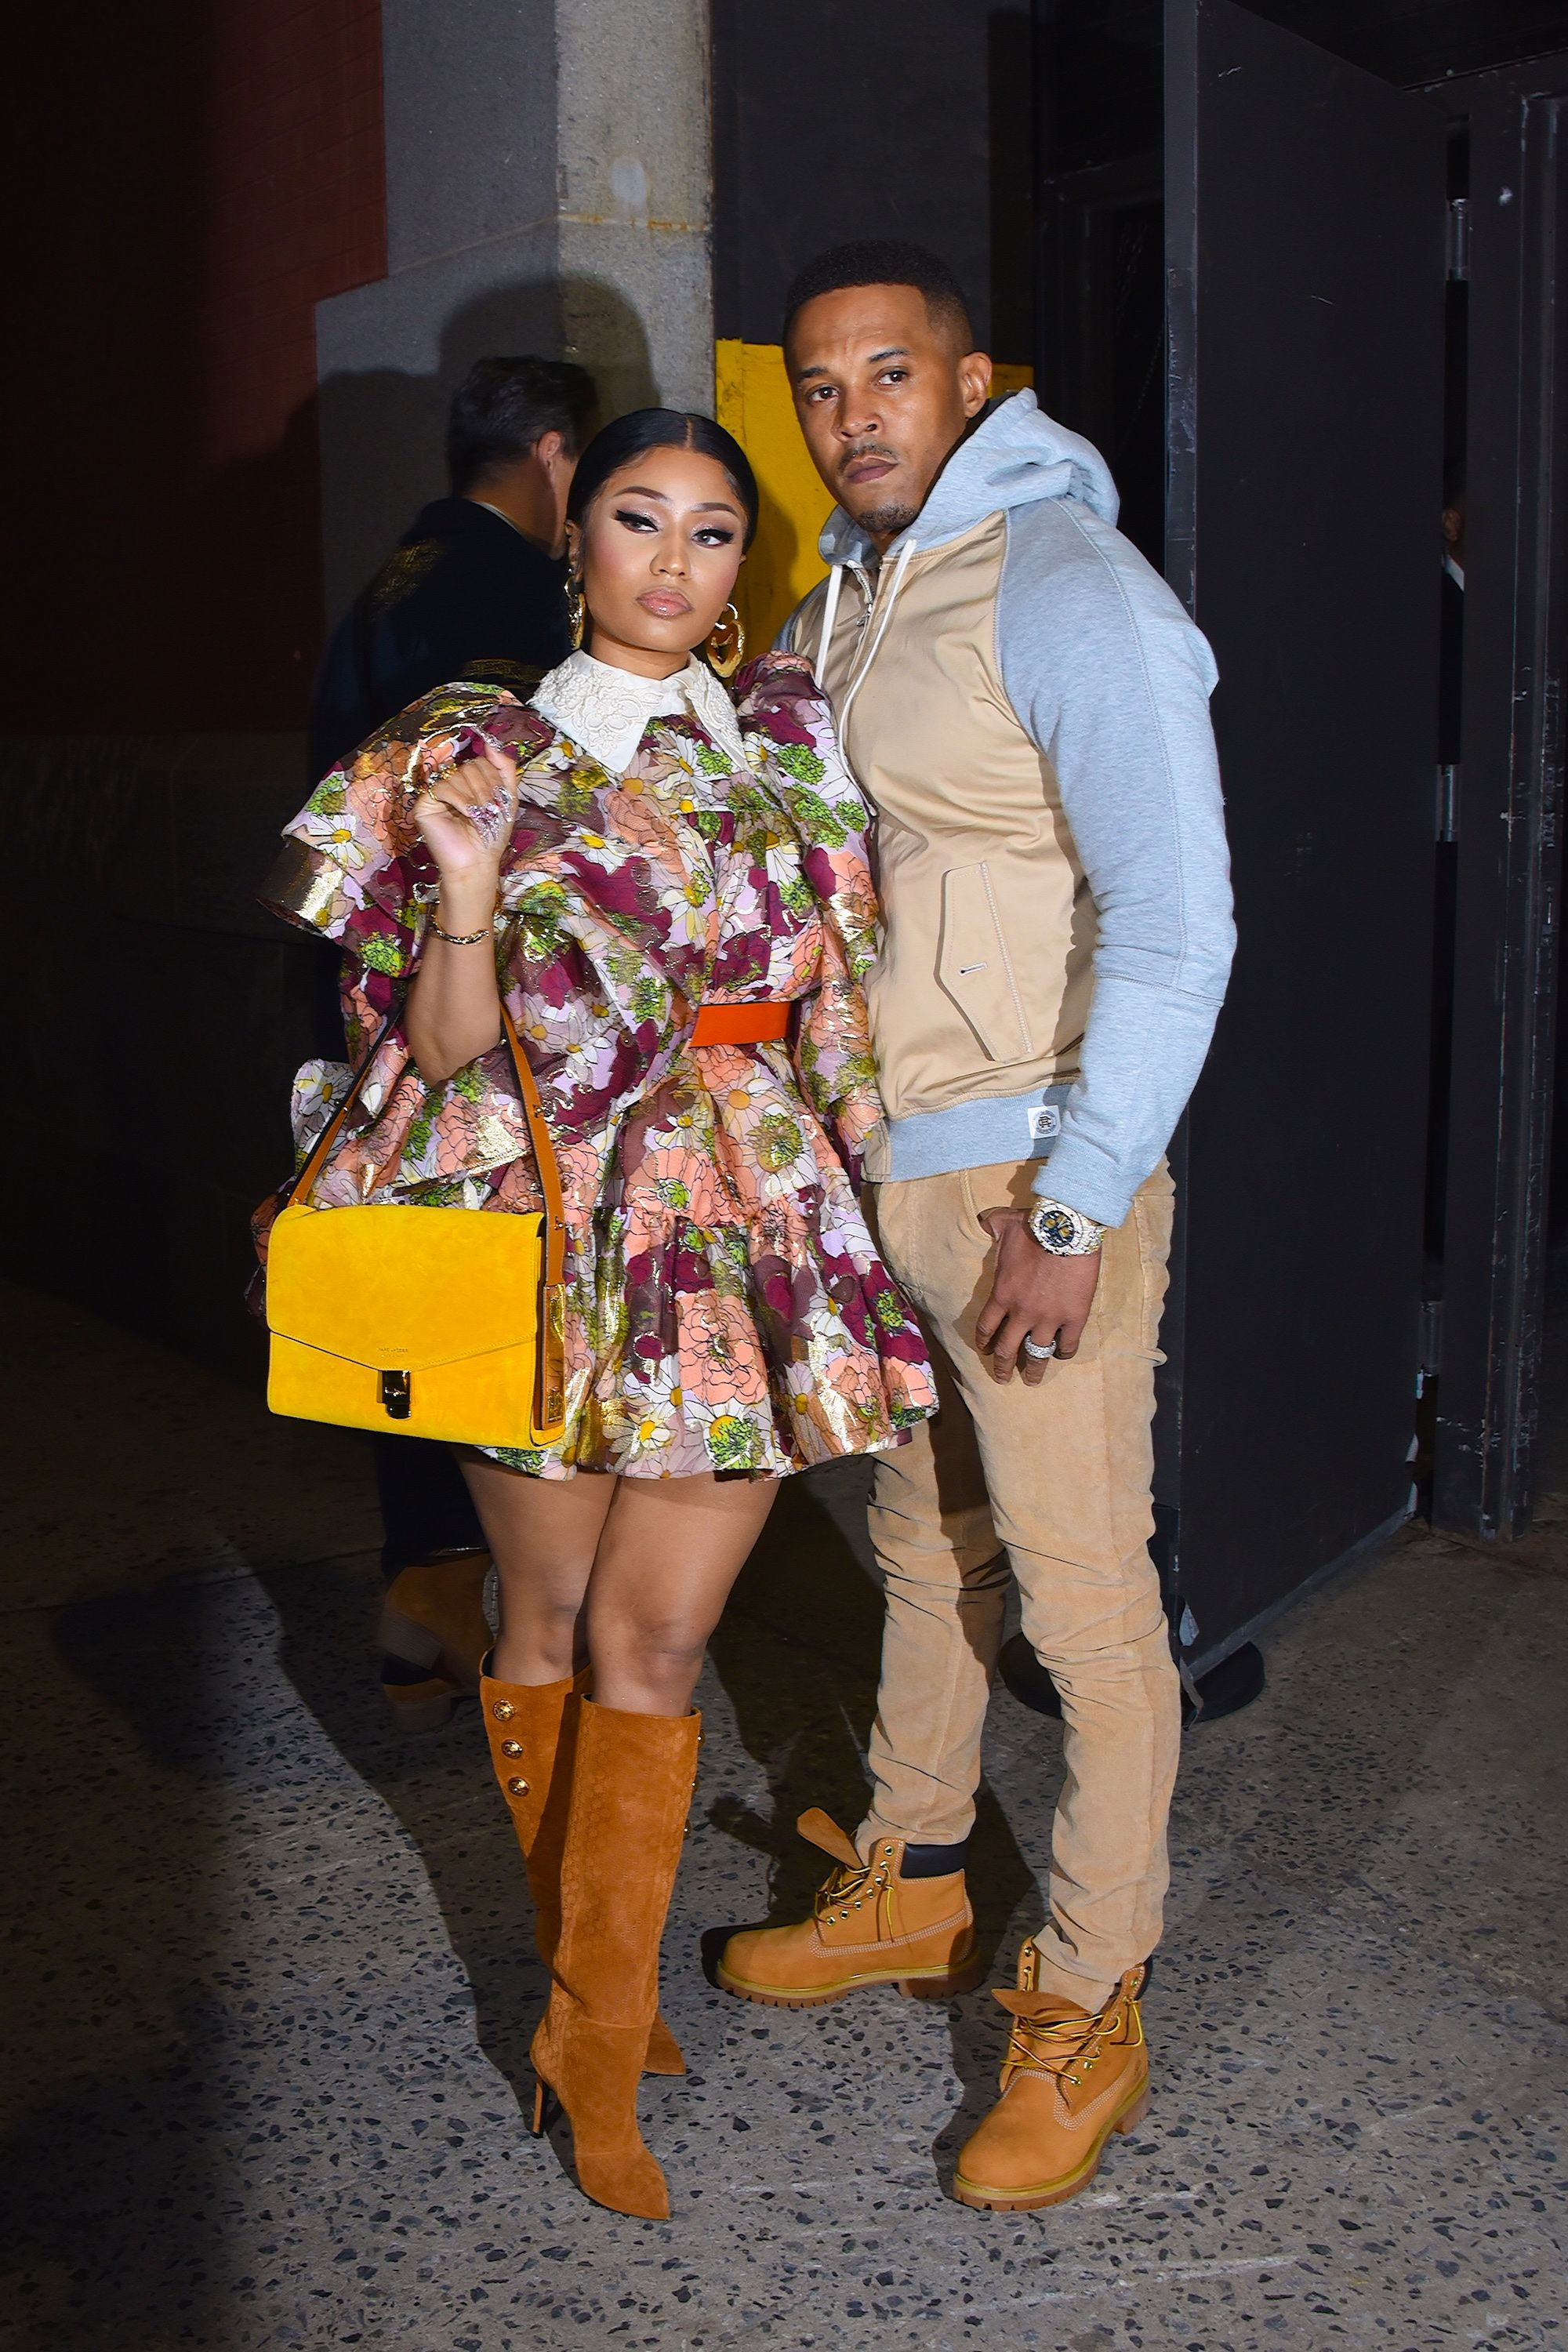 Nicki Minaj and husband Kenneth Petty seen at a Marc Jacobs NYFW event in Manhattan on February 12, 2020, in New York City | Photo: Robert Kamau/GC Images/Getty Images